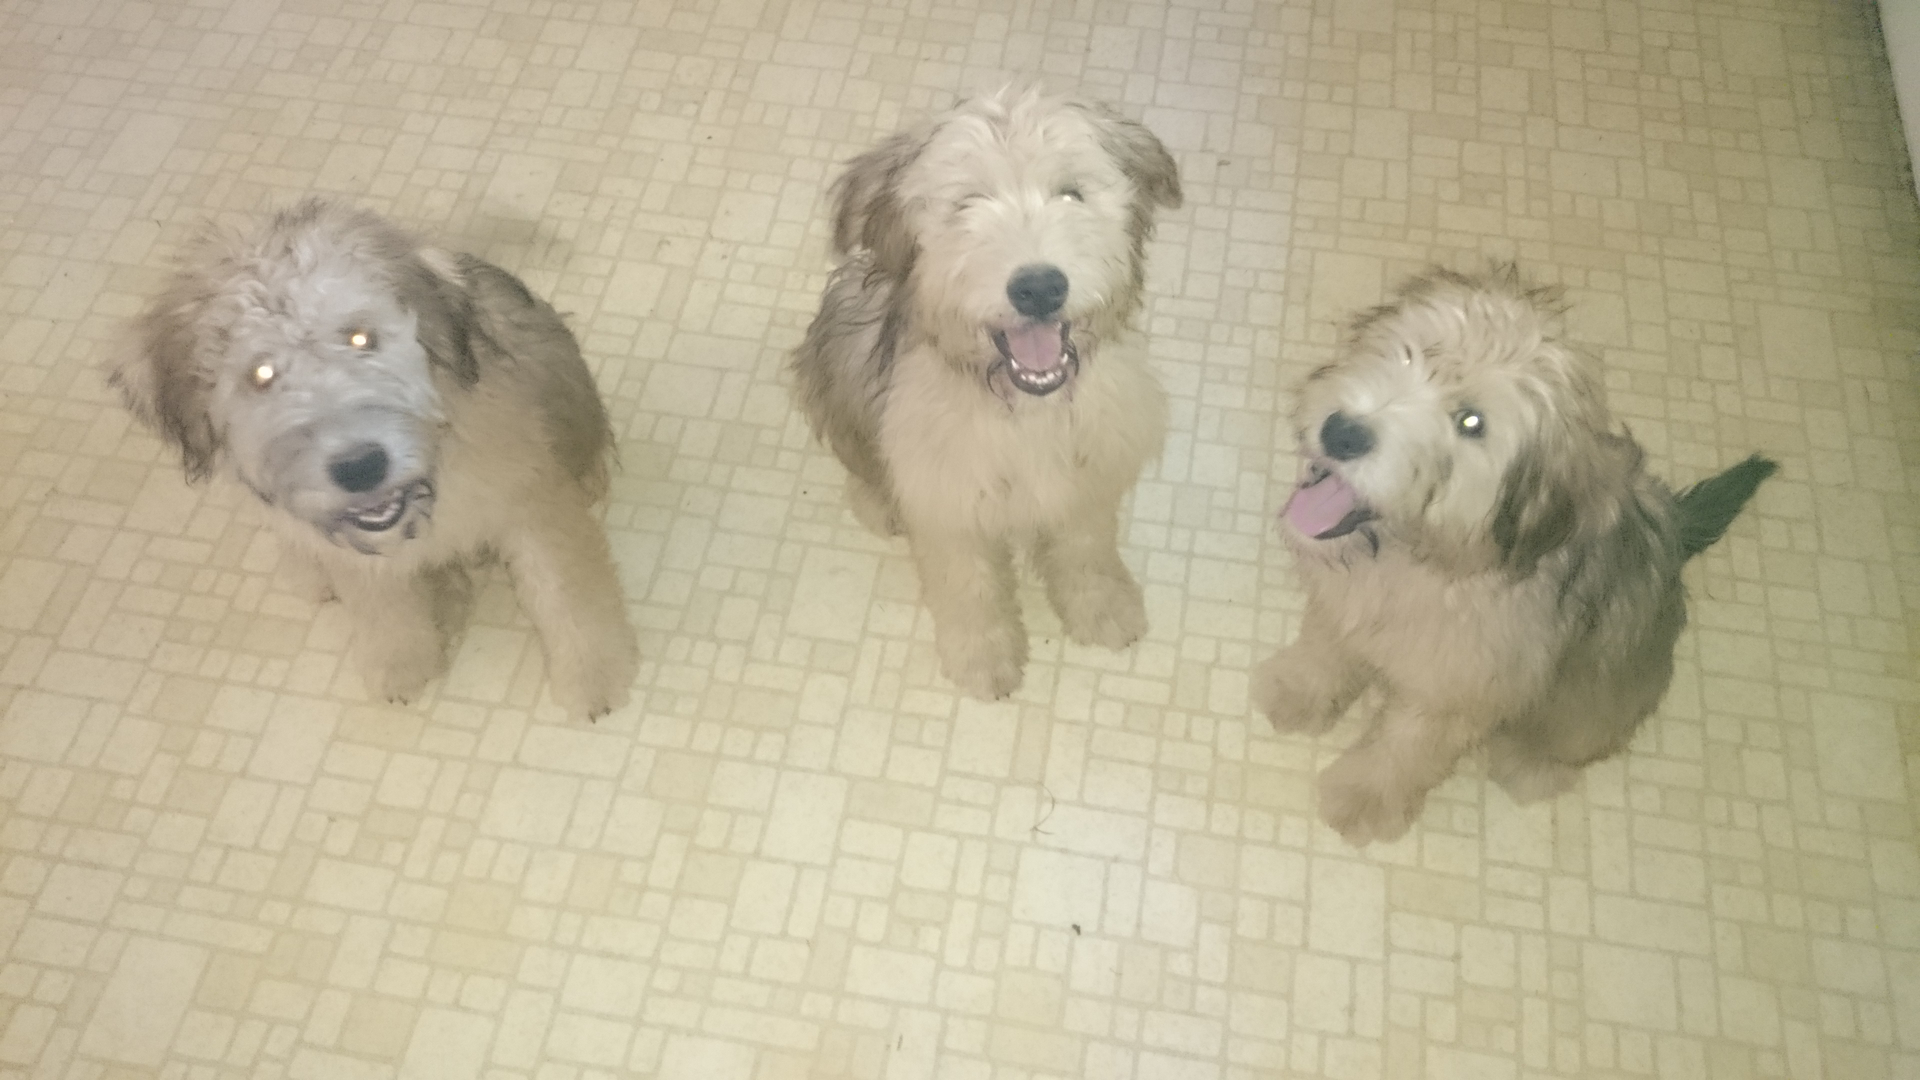 Sunny Vale Puppies - Soft Coated Wheaten Terrier Puppies, Hypo ...